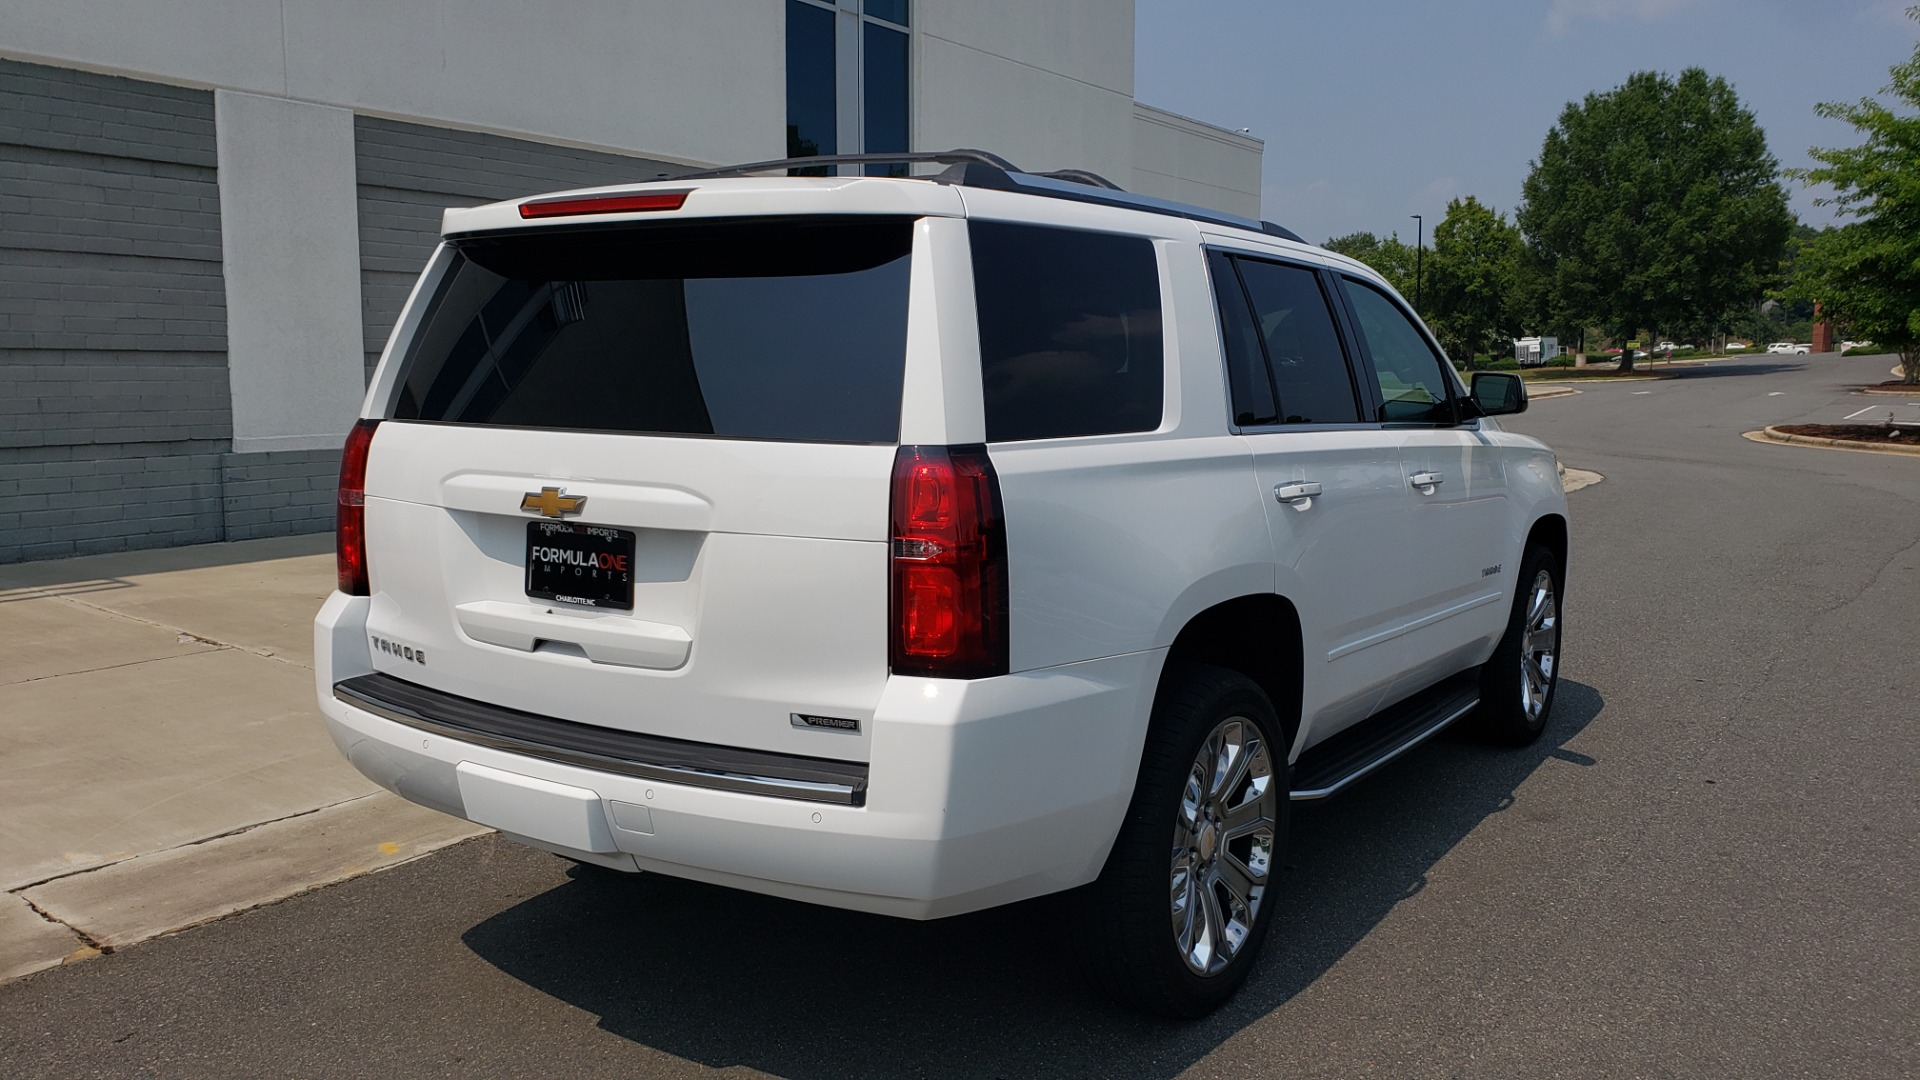 Used 2018 Chevrolet TAHOE PREMIER 4WD / NAV / SUNROOF / BOSE / 3-ROW / HUD / REARVIEW for sale $63,995 at Formula Imports in Charlotte NC 28227 2